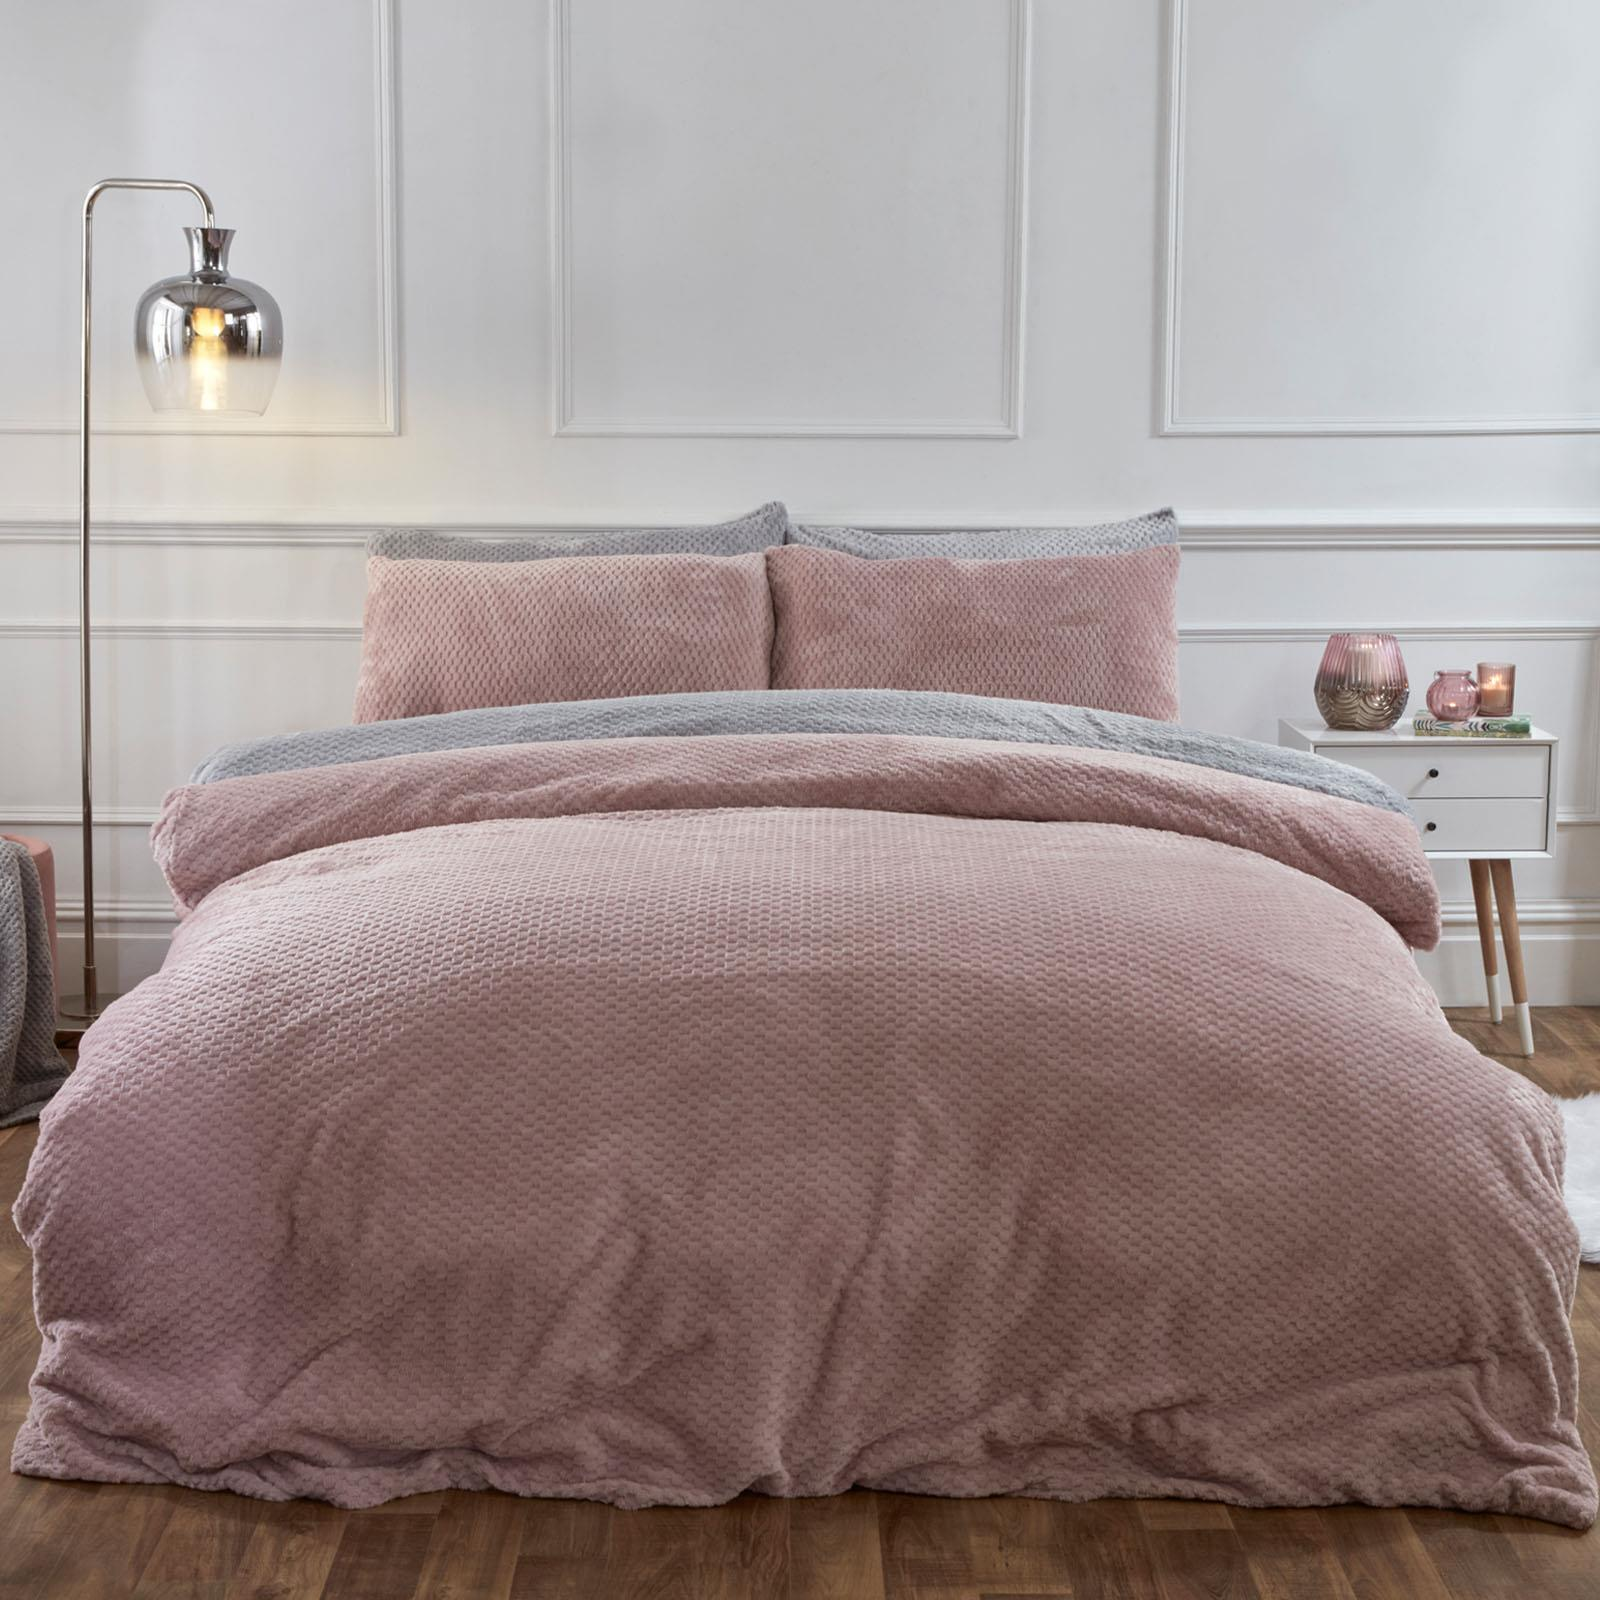 Brentfords-Warm-Waffle-Fleece-Duvet-Cover-with-Pillowcase-Soft-Cosy-Bedding-Set thumbnail 7